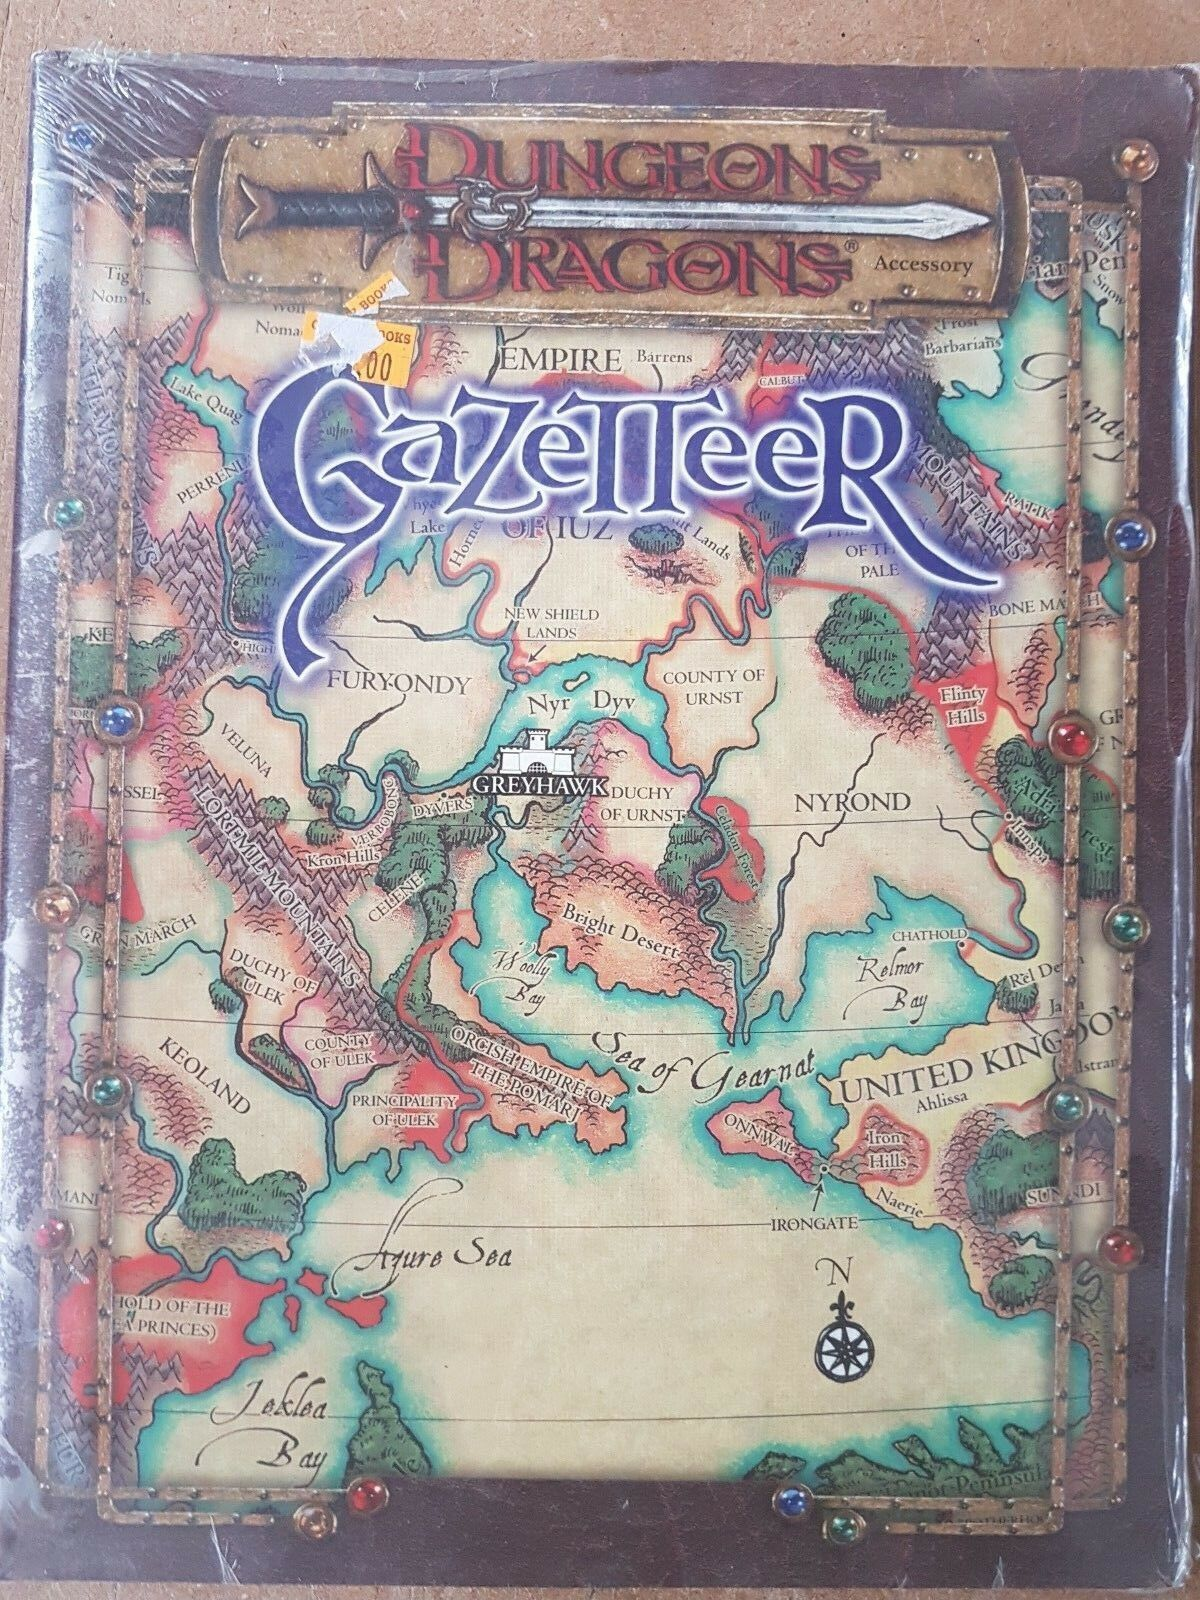 GAZETTEER DUNGEONS & DRAGONS - D20 SYSTEM - WIZARDS OF THE COAST NEW & SEALED